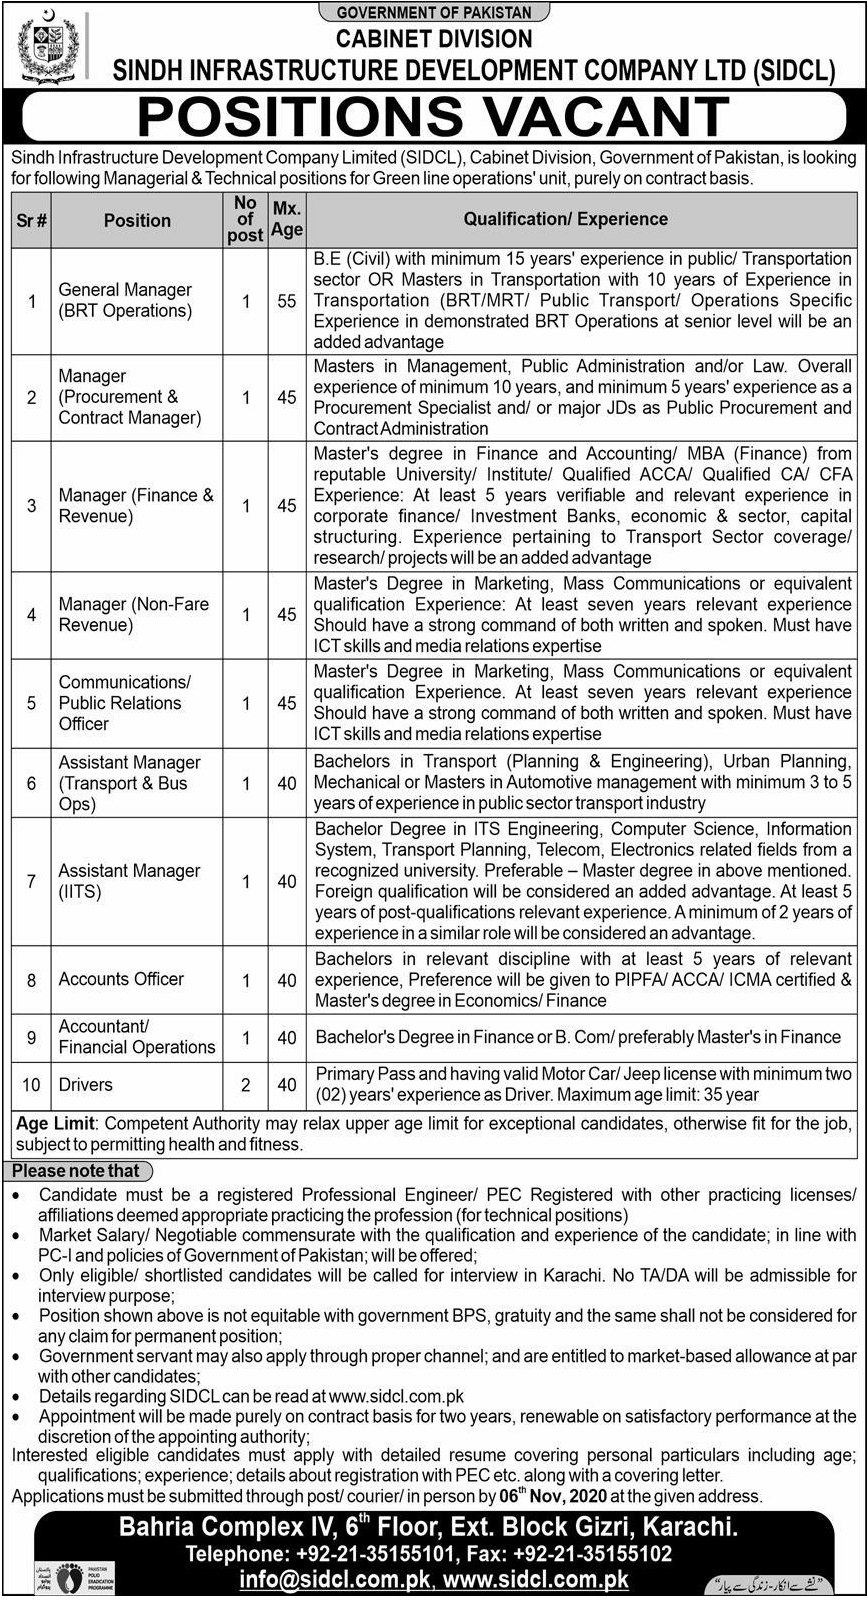 PIPFA Pass job For Accounts Officer in Sindh Infrastructure Development Company Ltd Govt of Pakstan in Karachi for Pakistan candidates -2020